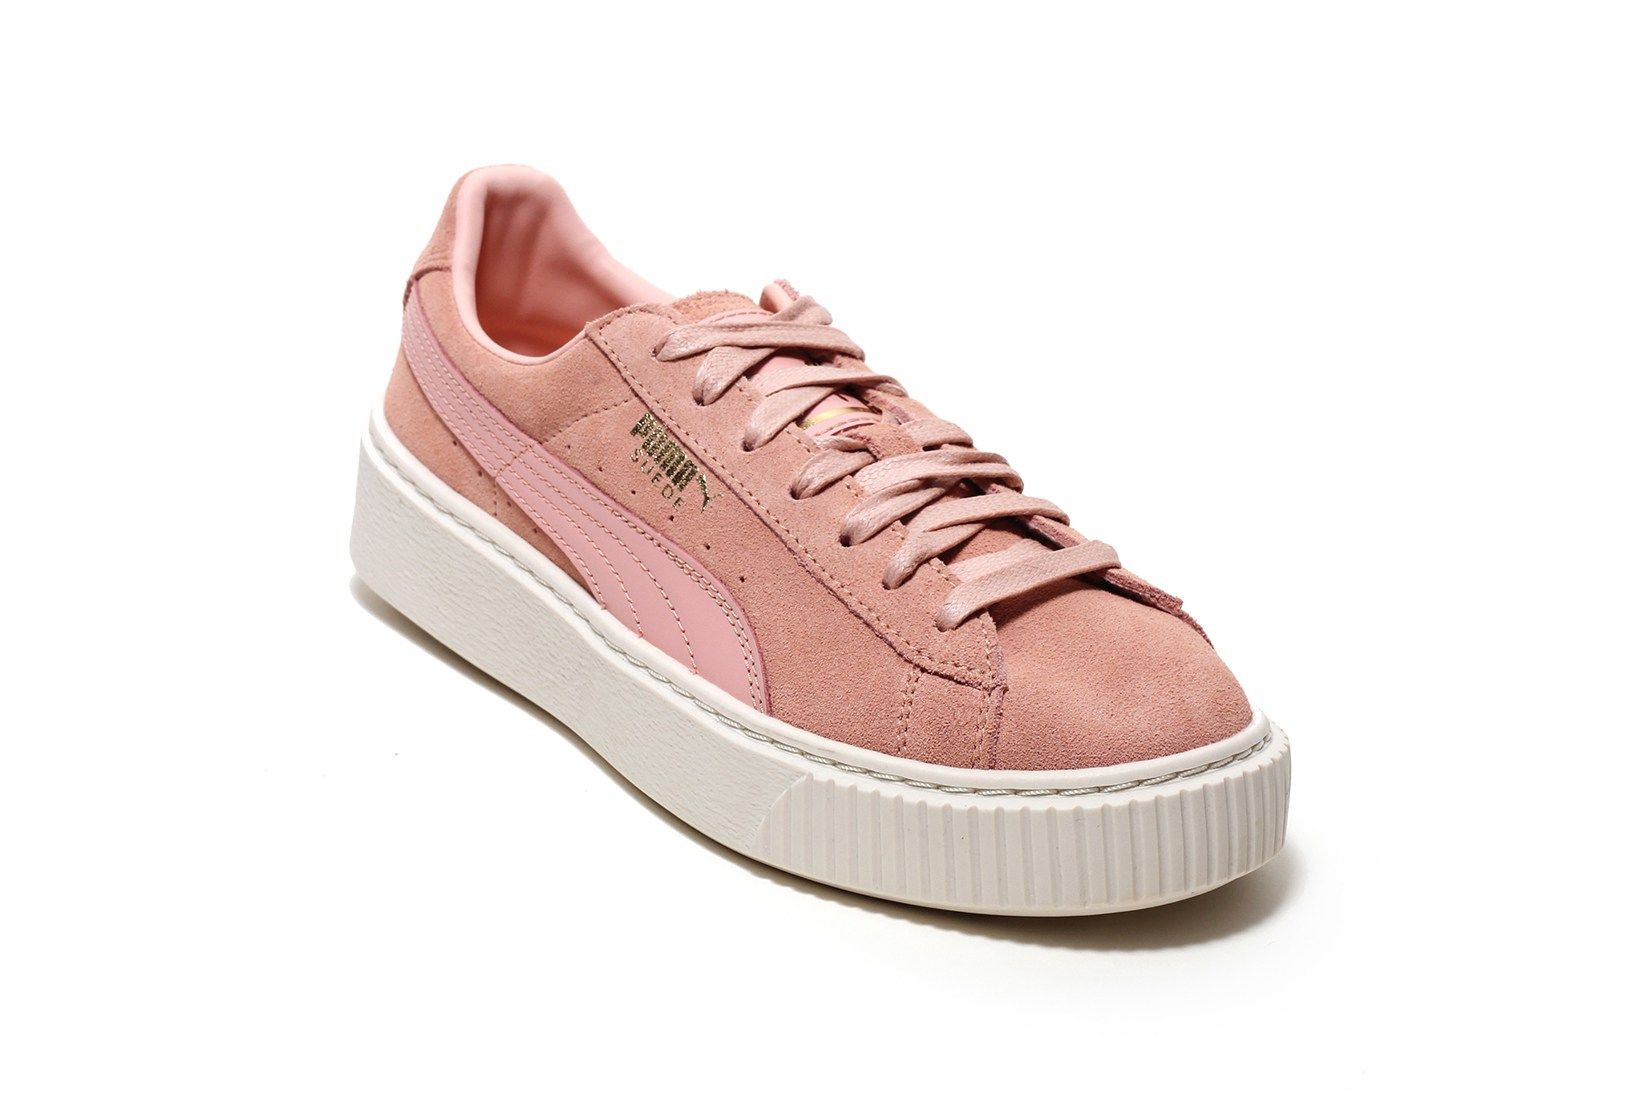 PUMA Made a Suede Platform Core Pastel Duo in Peachy Pink and Blue: There's  no stopping the PUMA Suede which now boasts more models than ever.